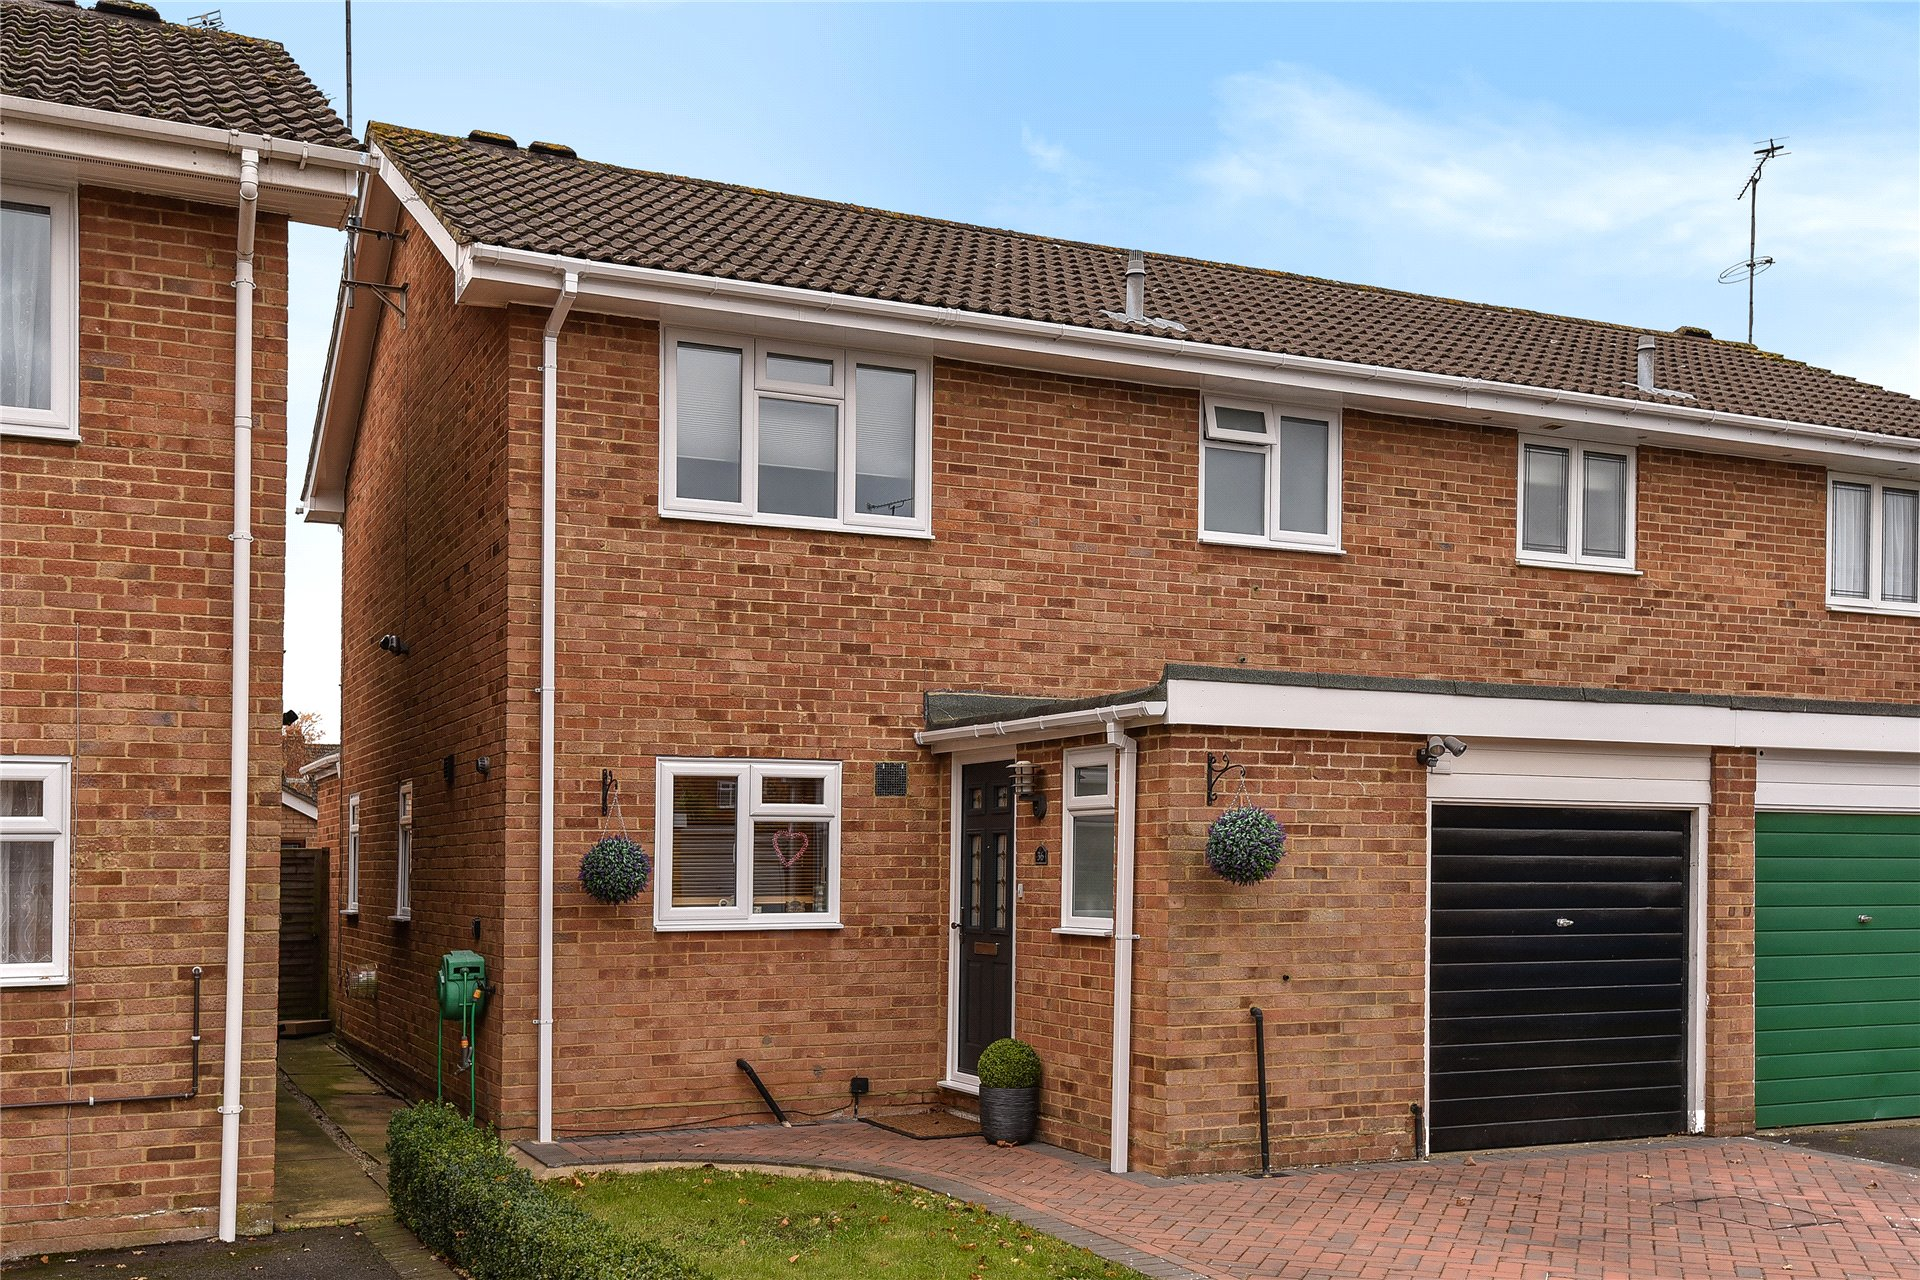 3 Bedrooms Semi Detached House for sale in Moray Avenue, College Town, Sandhurst, Berkshire, GU47